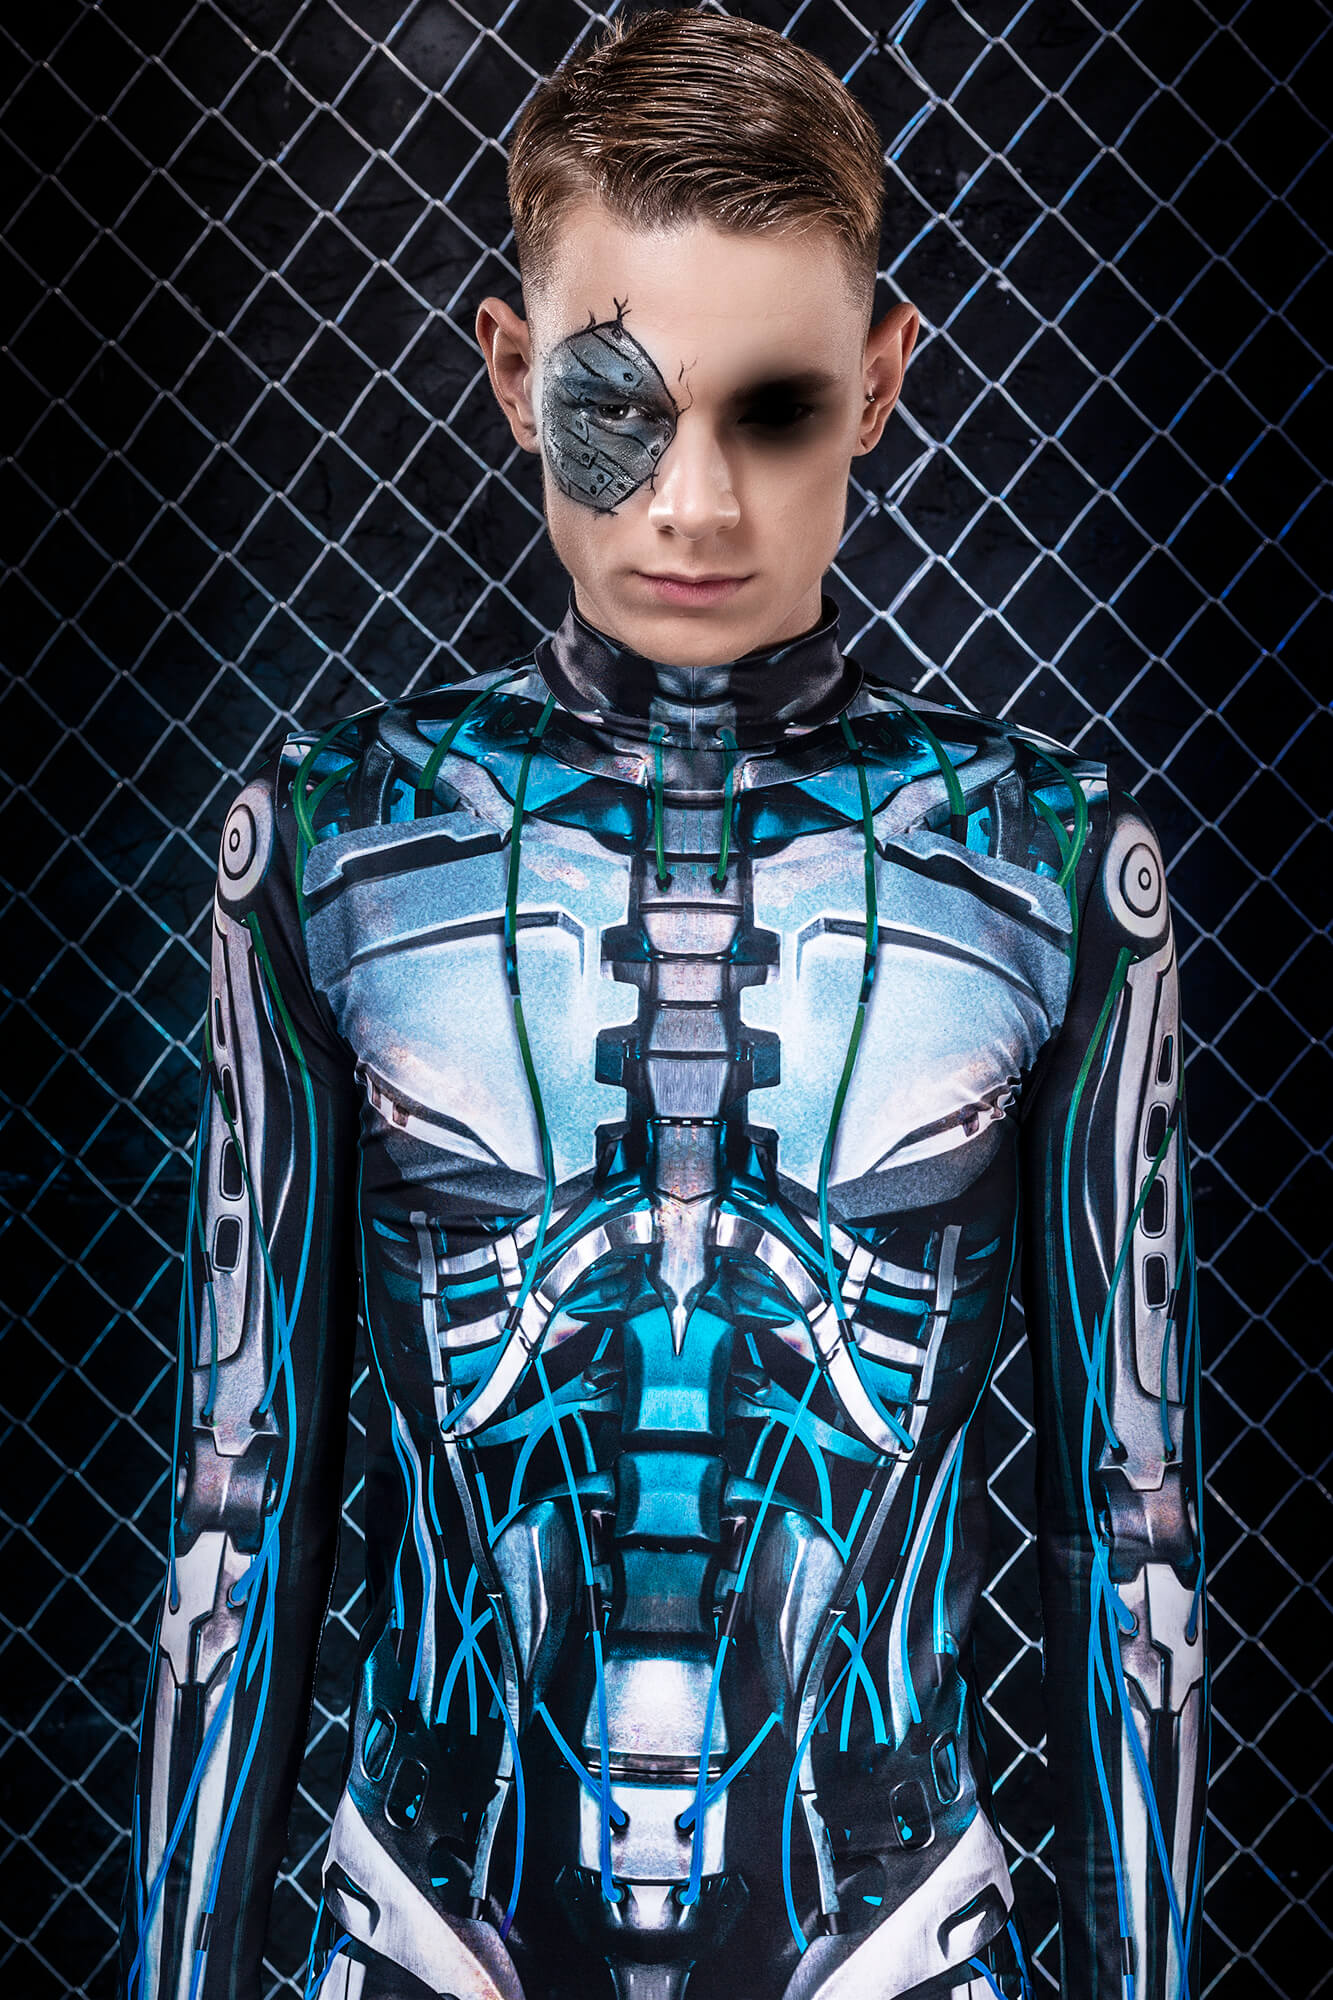 Halloween Costumes for Men - Male Cyberpunk Robot Halloween Costume Mens - Glow in the Dark